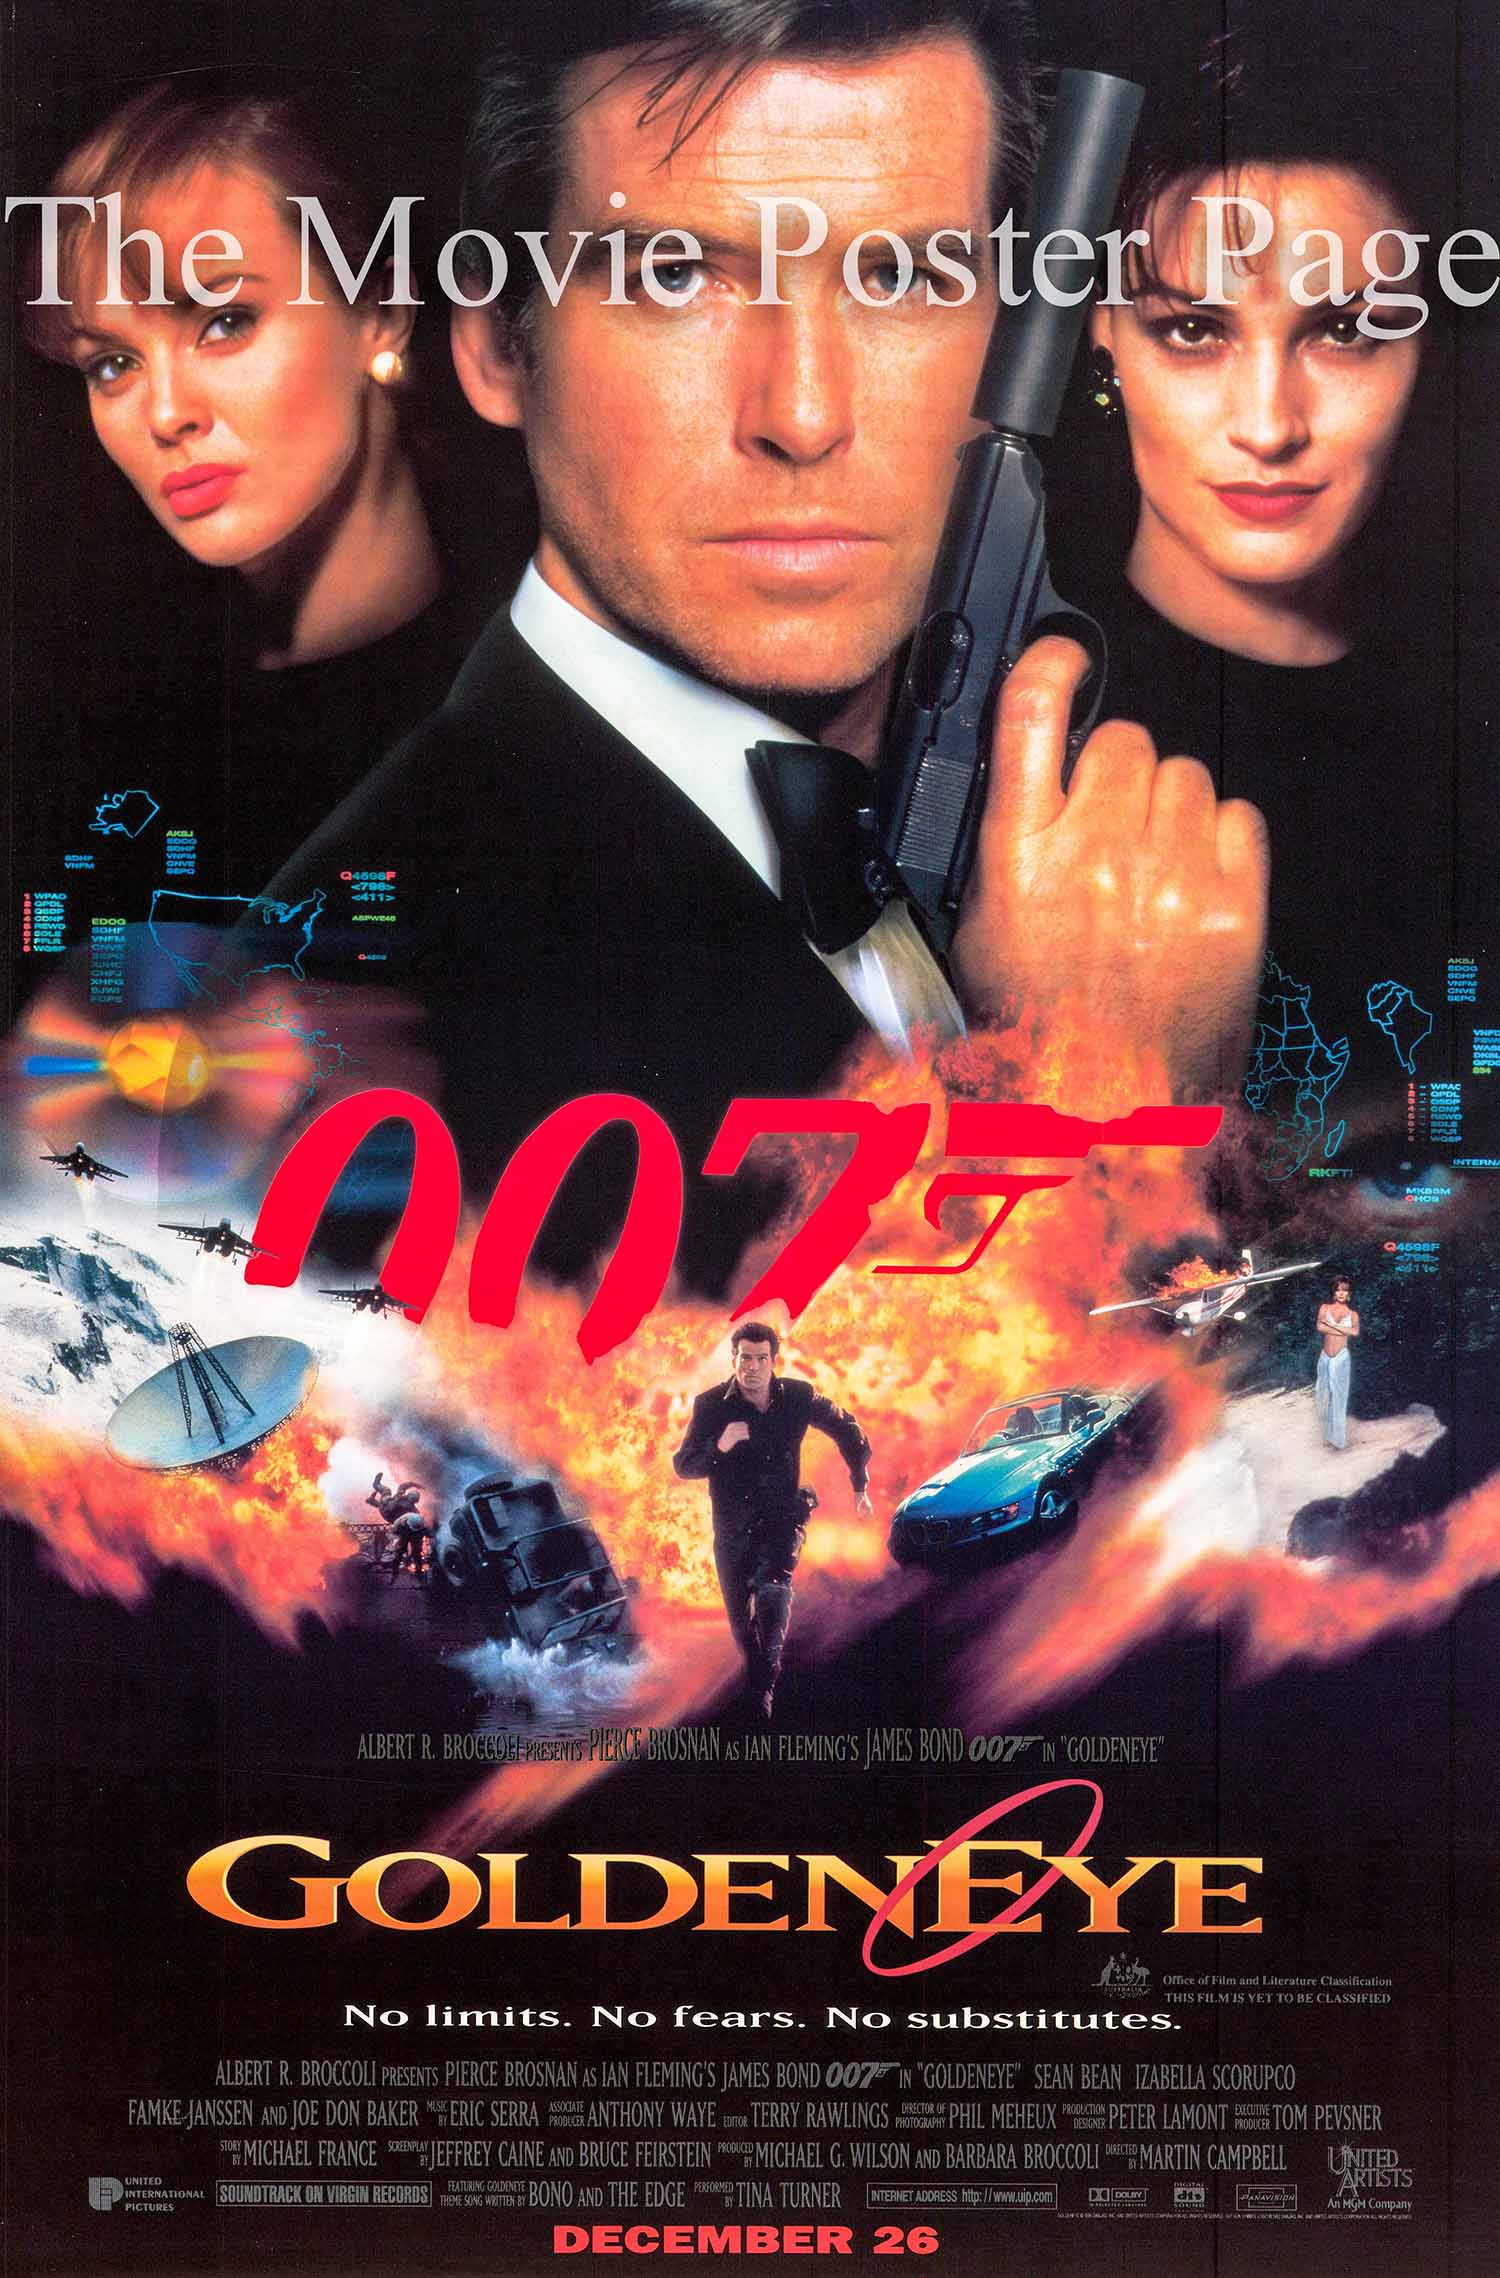 Pictured is a US advance promotional poster for the 1995 Martin Campbell film Goldeneye starring Pierce Brosnan